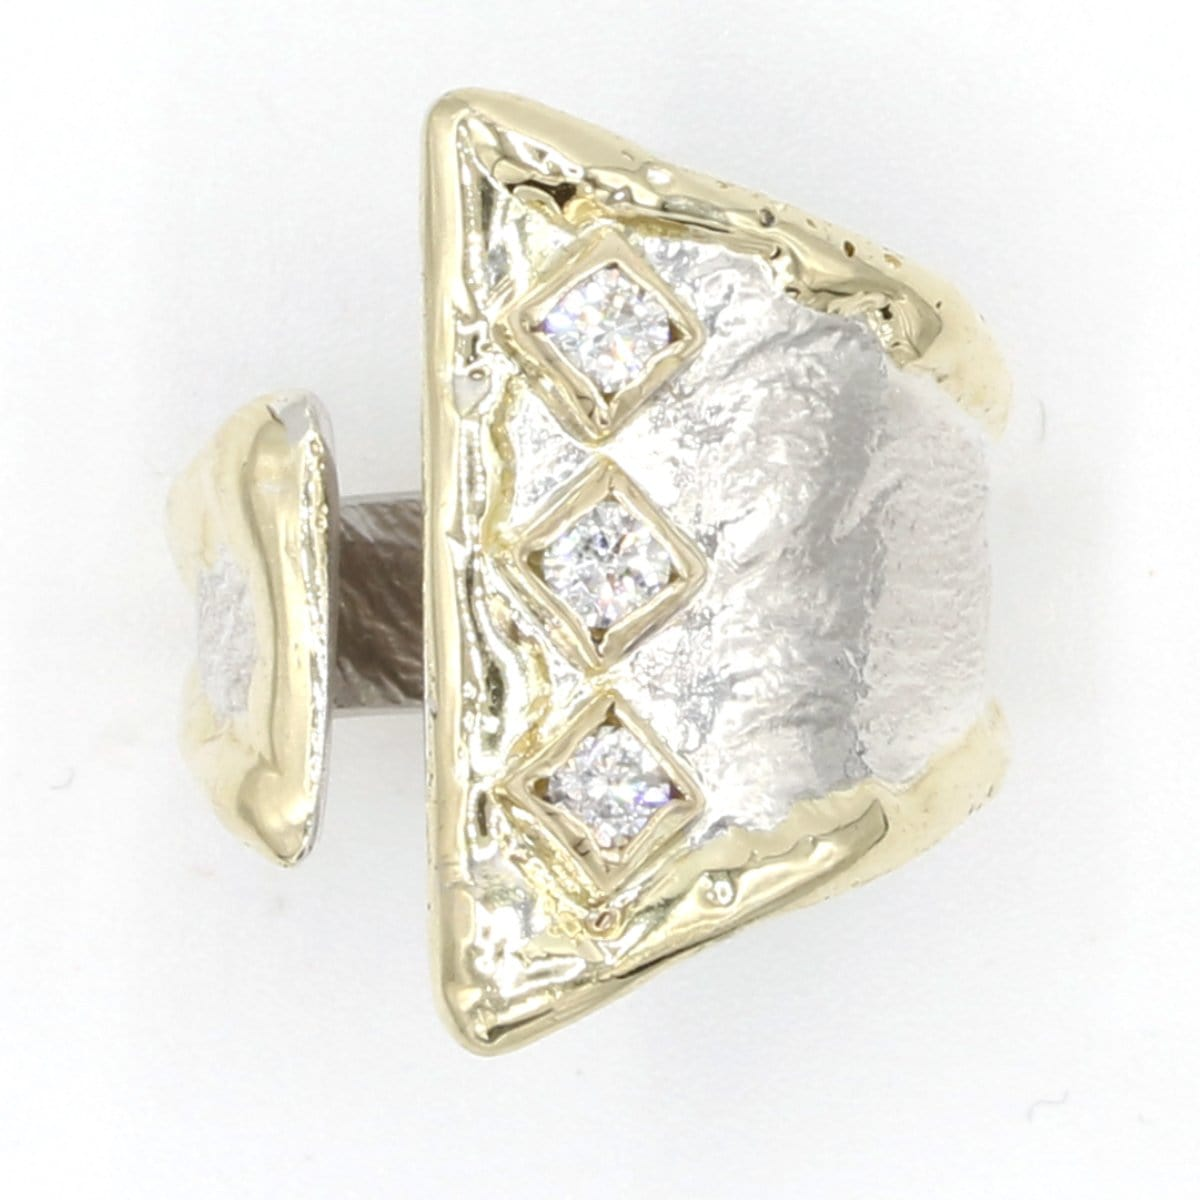 14K Gold & Crystalline Silver Diamond Ring - 37430-Fusion Designs-Renee Taylor Gallery